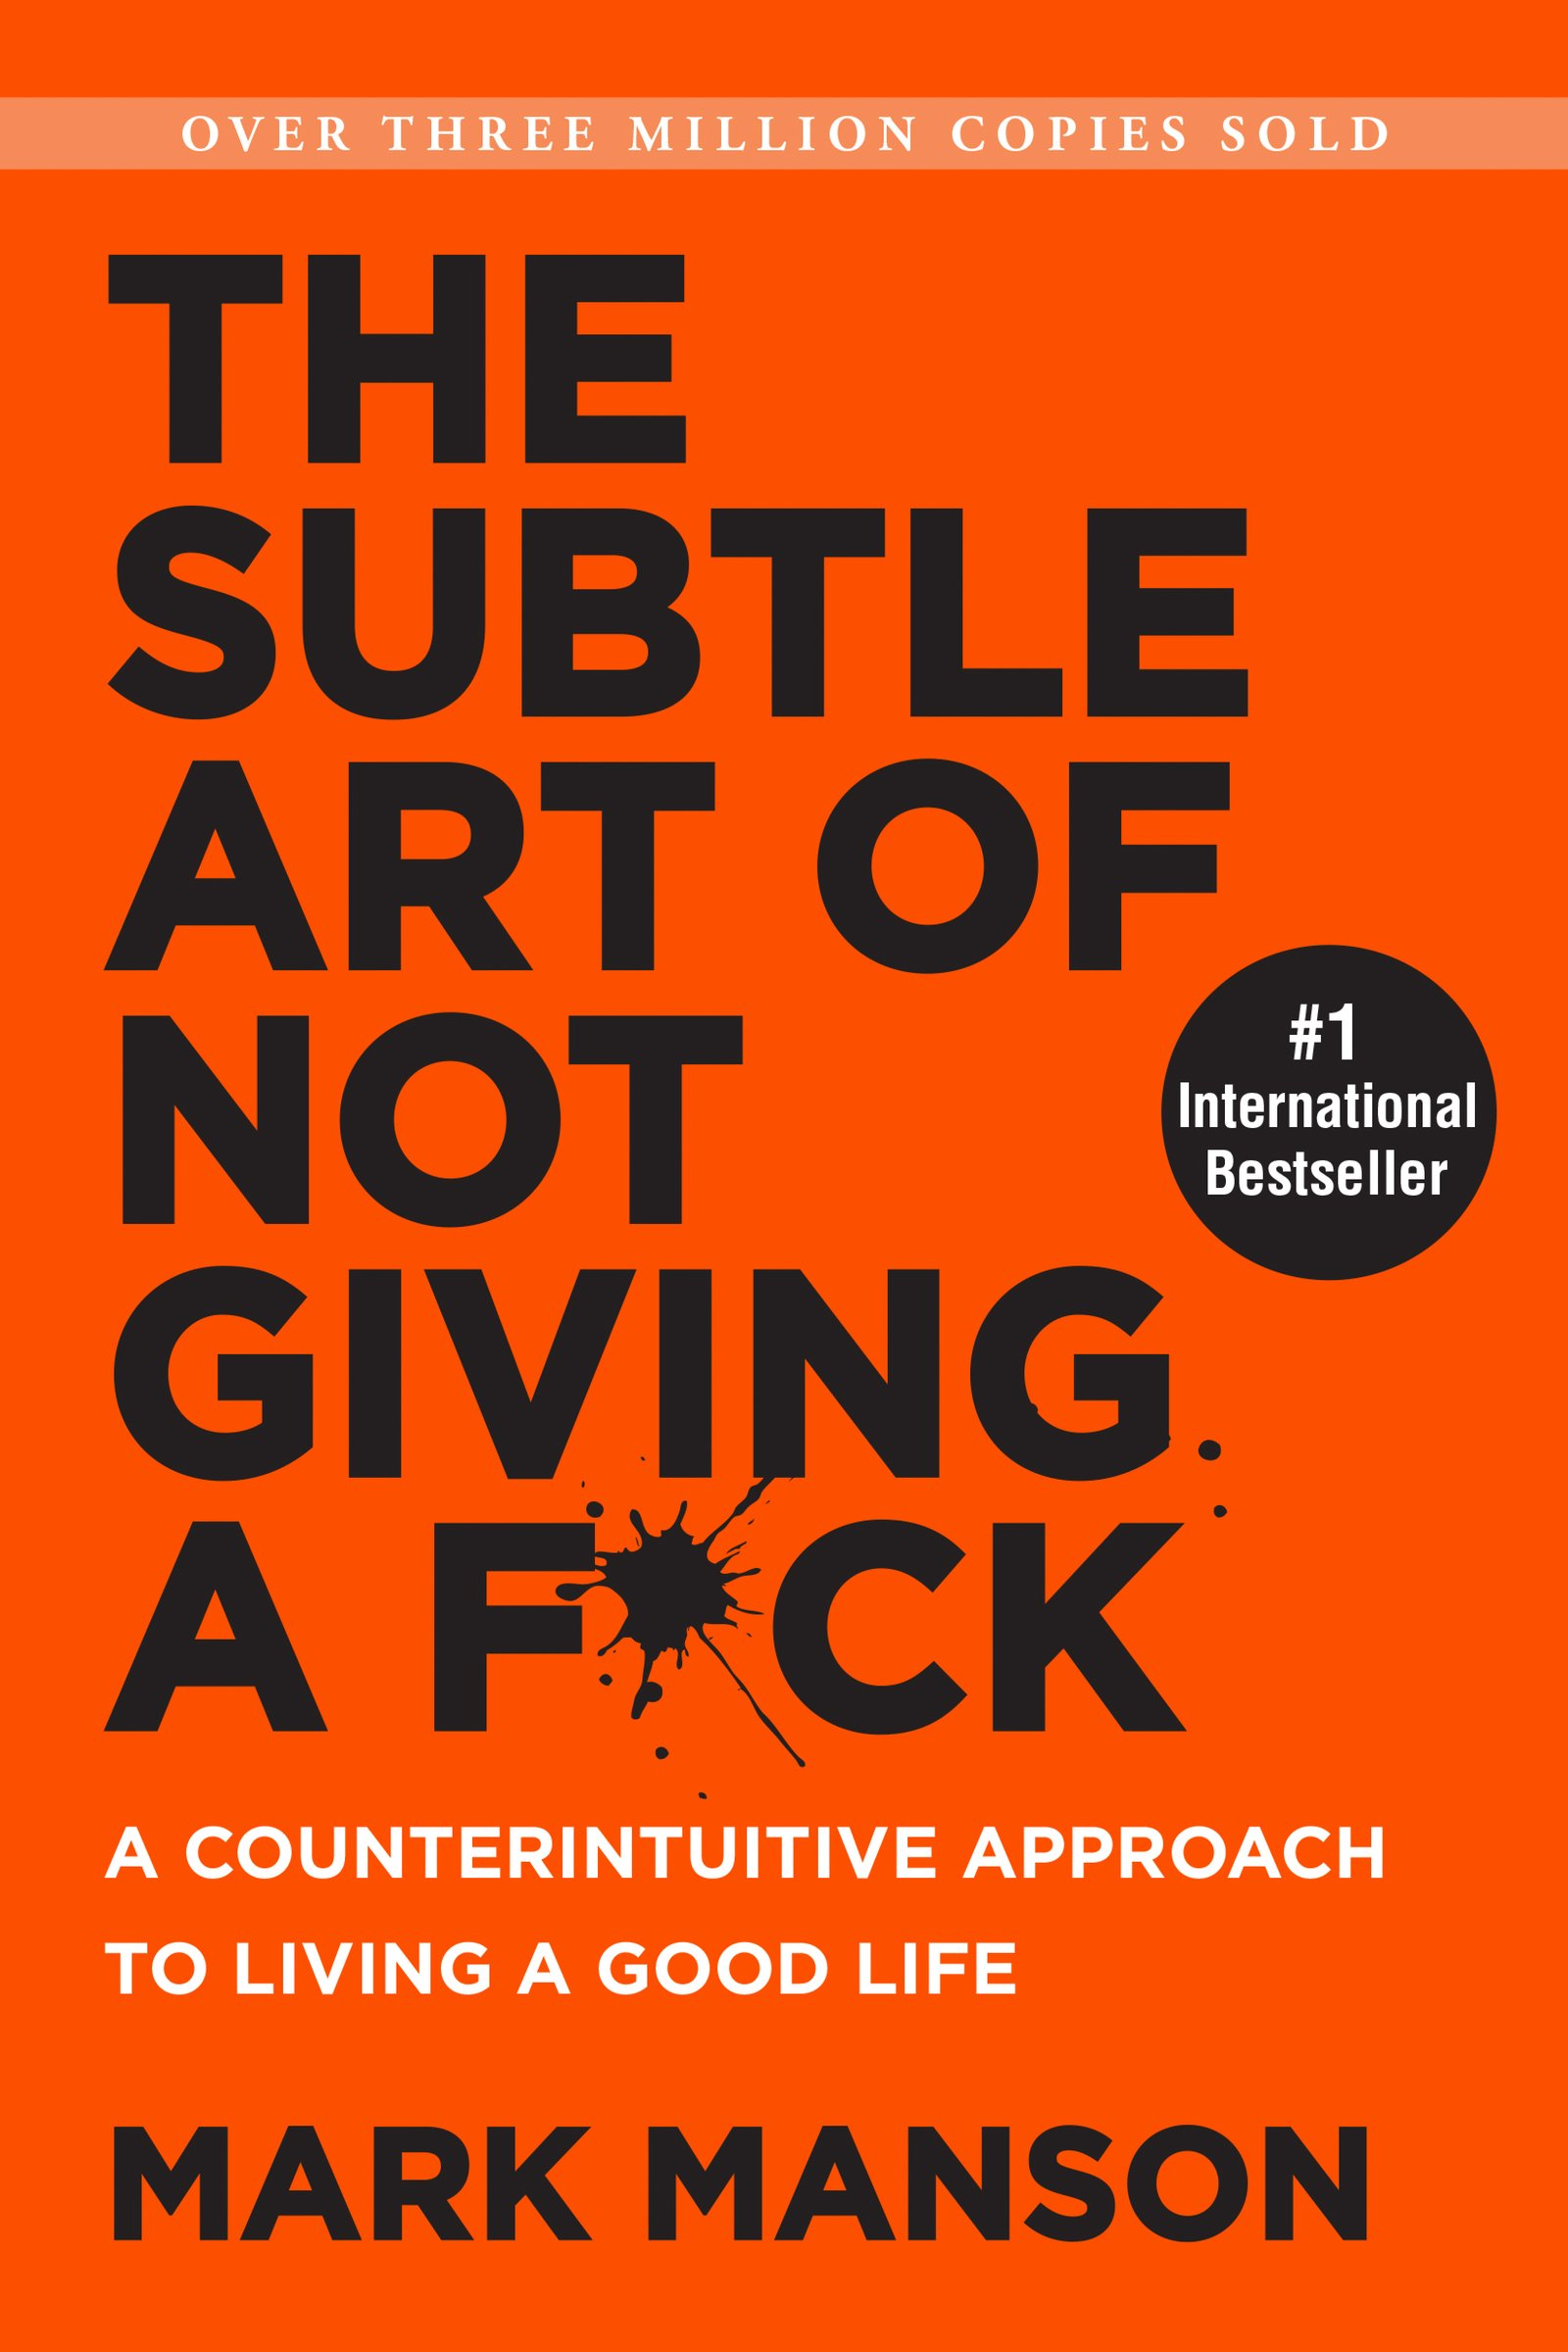 The Subtle Art of Not Giving a F*ck (Mark Manson)